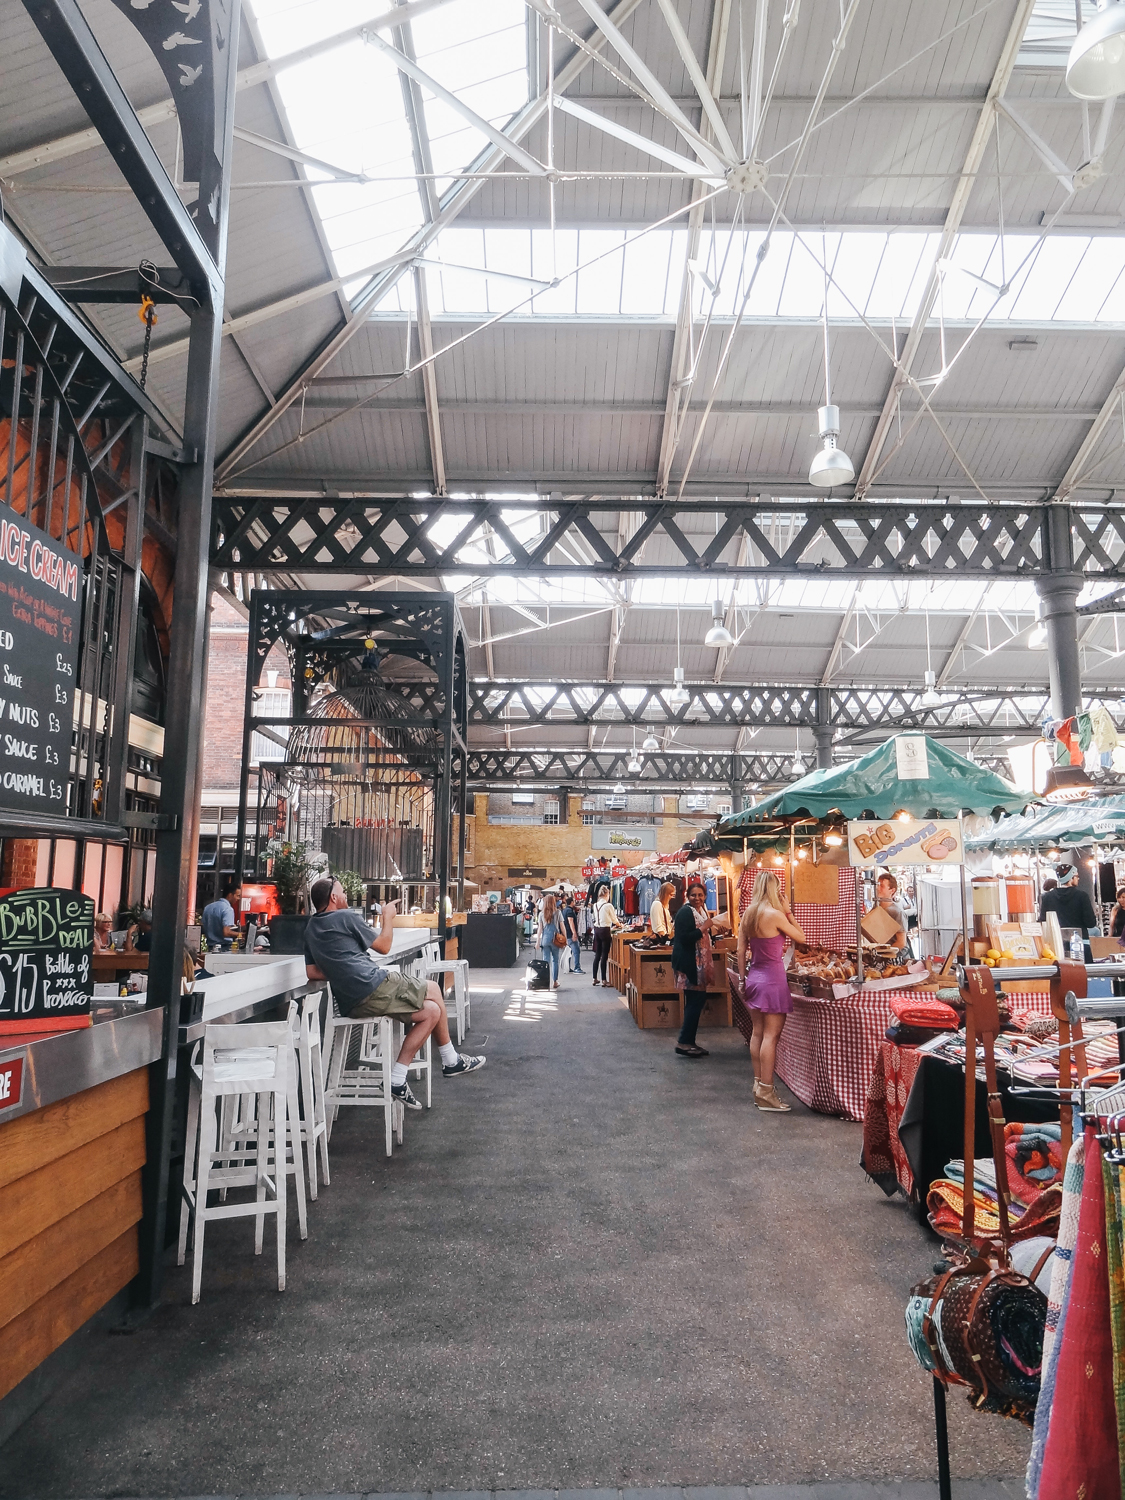 East end, London, Old Spitafields market